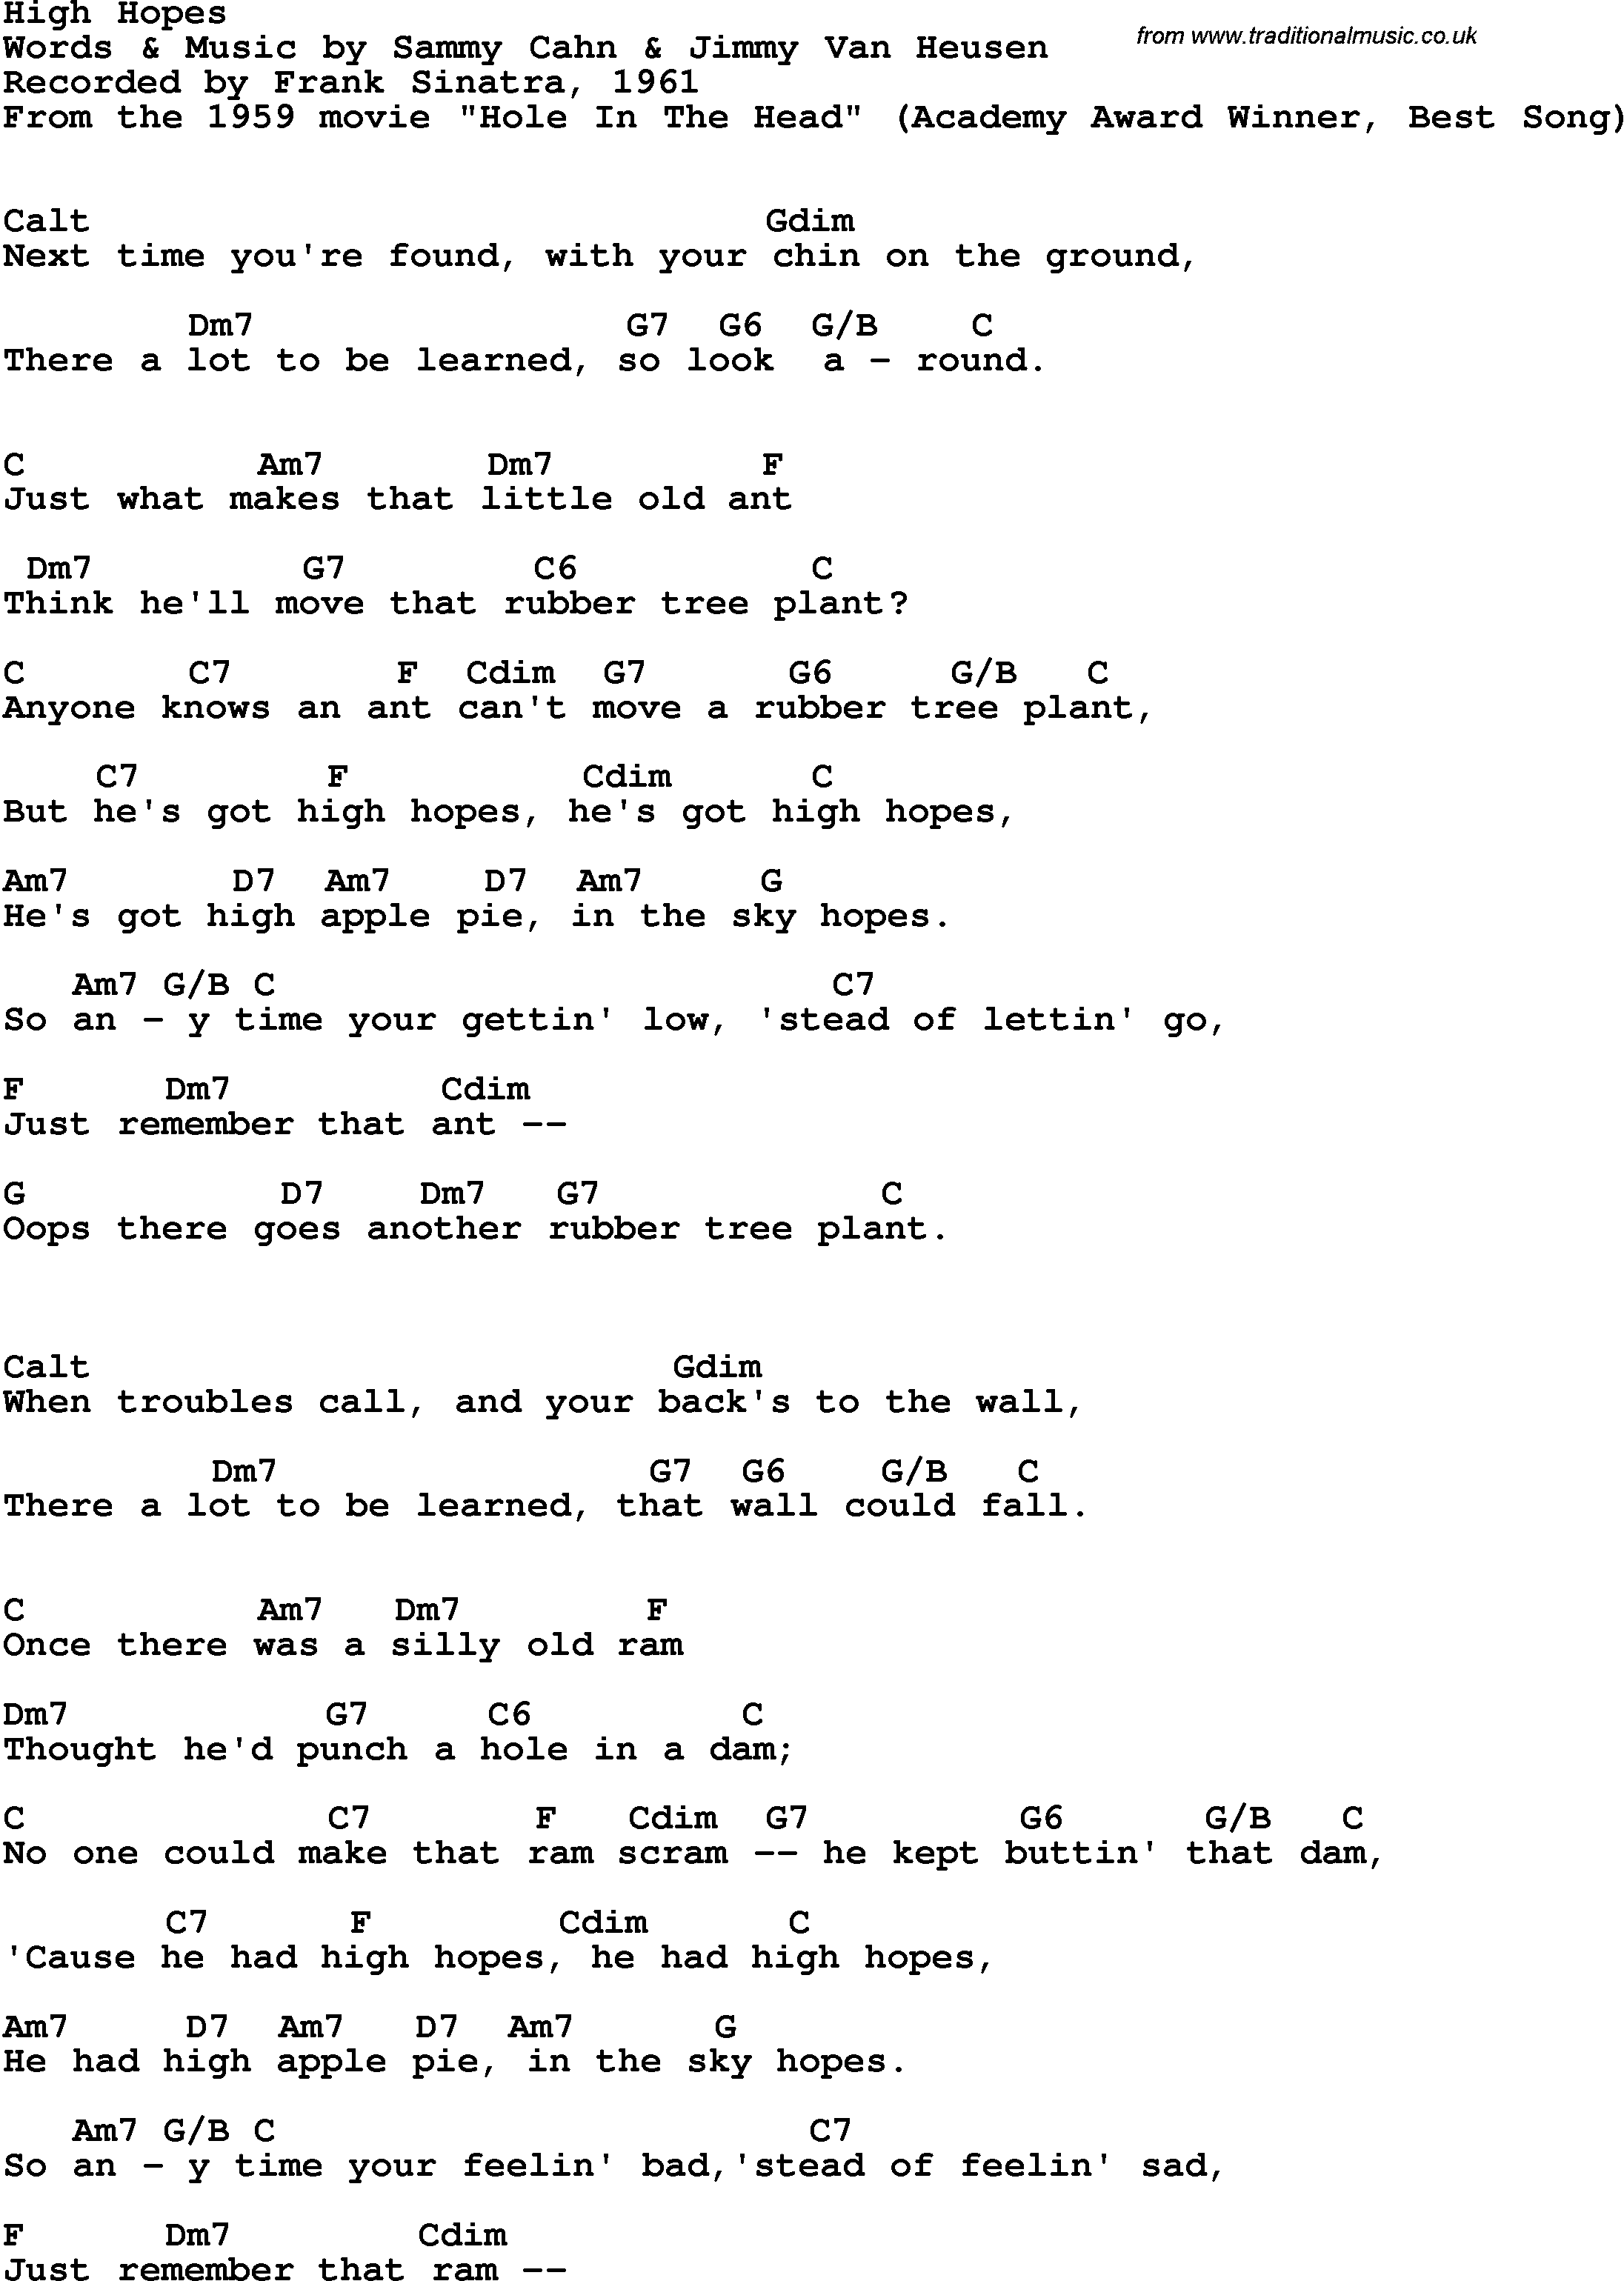 Song Lyrics With Guitar Chords For High Hopes Frank Sinatra 1961